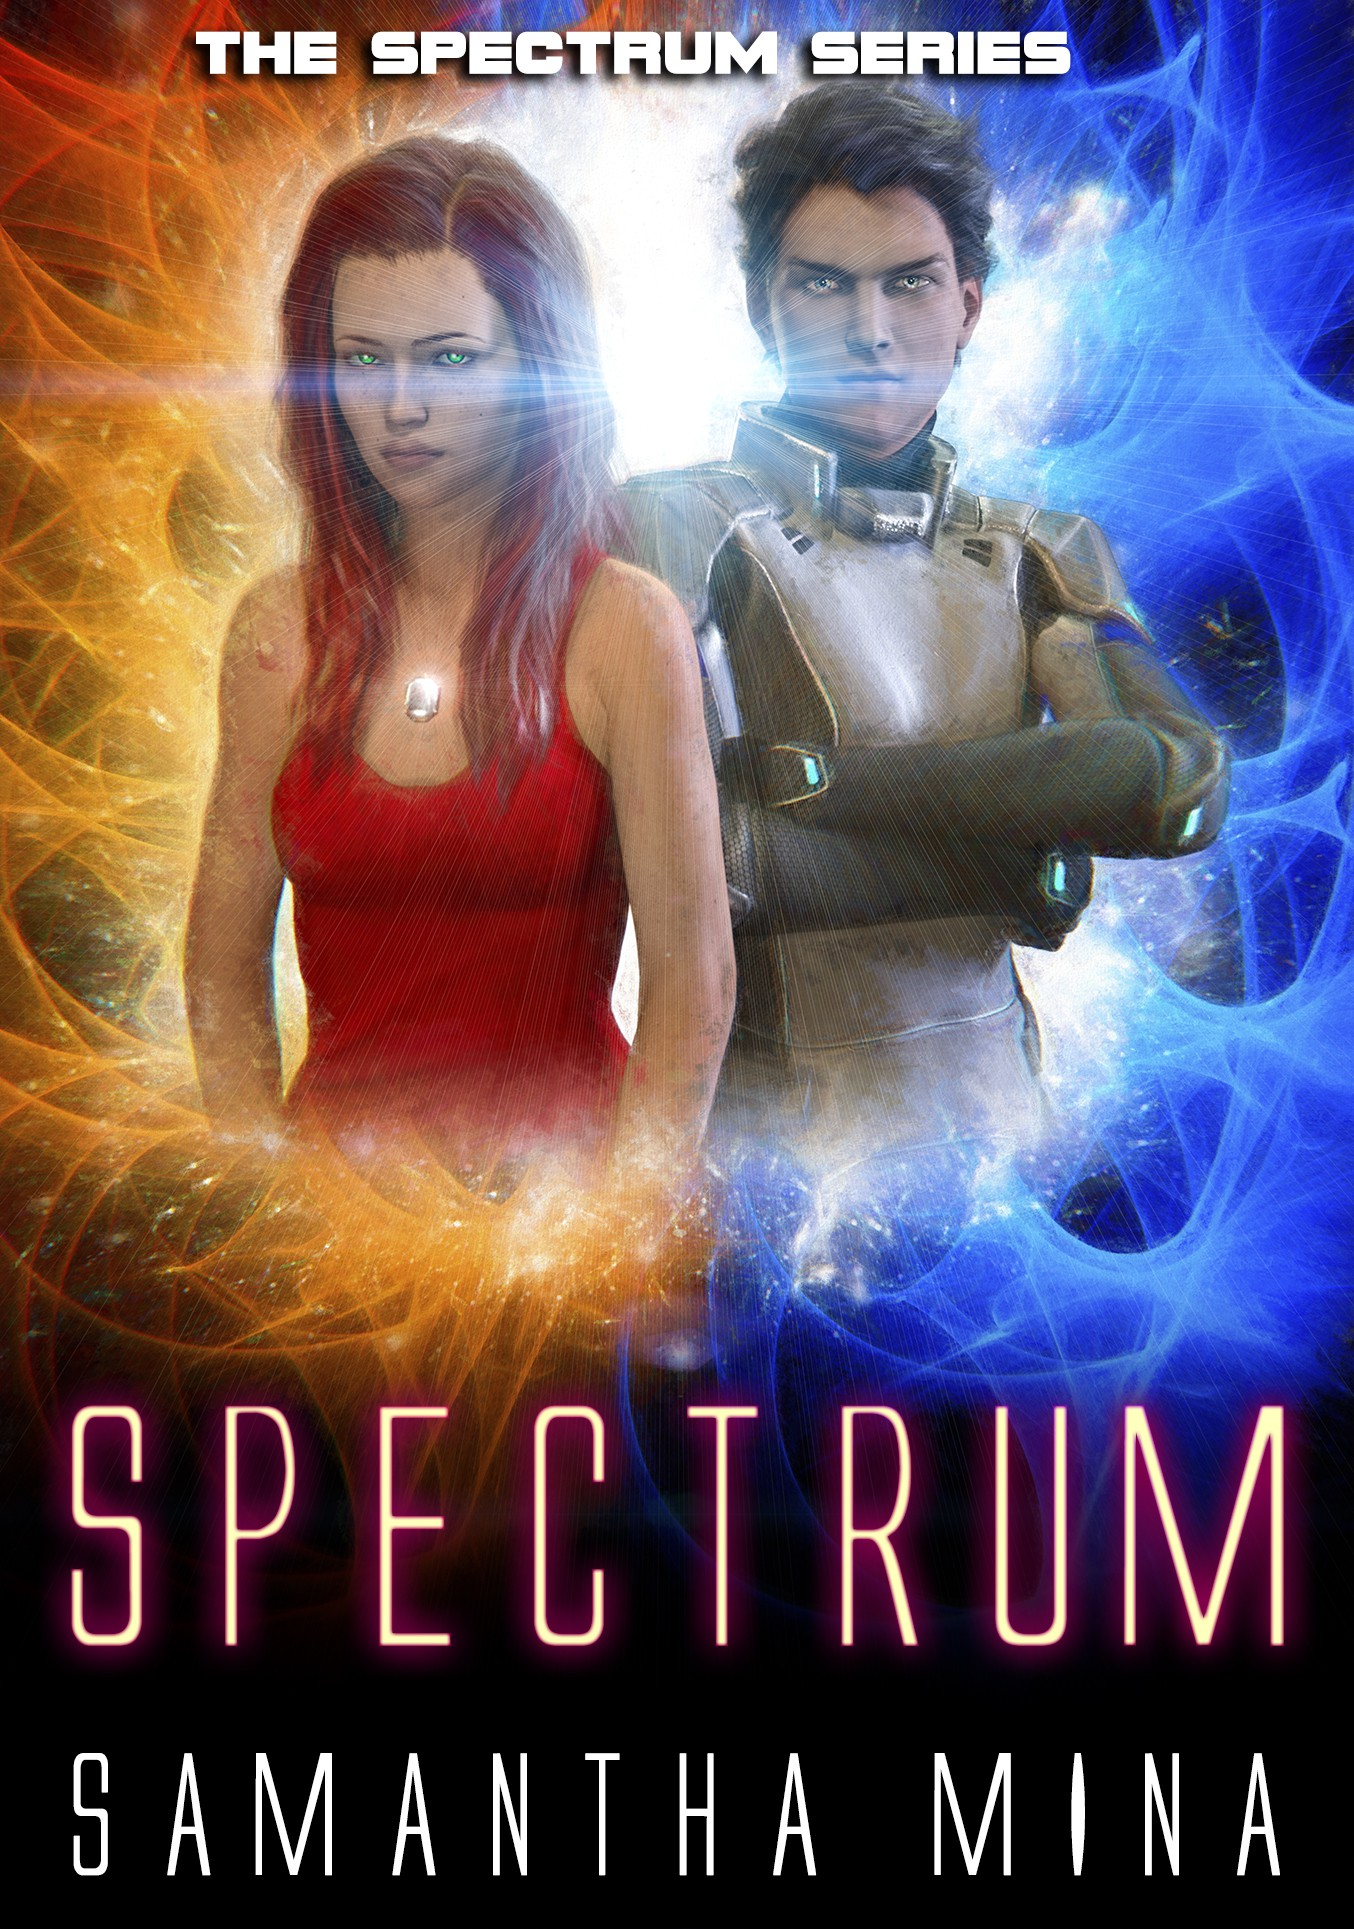 Cover Art for Dystopian Young Adult Novel With Large Fan Base